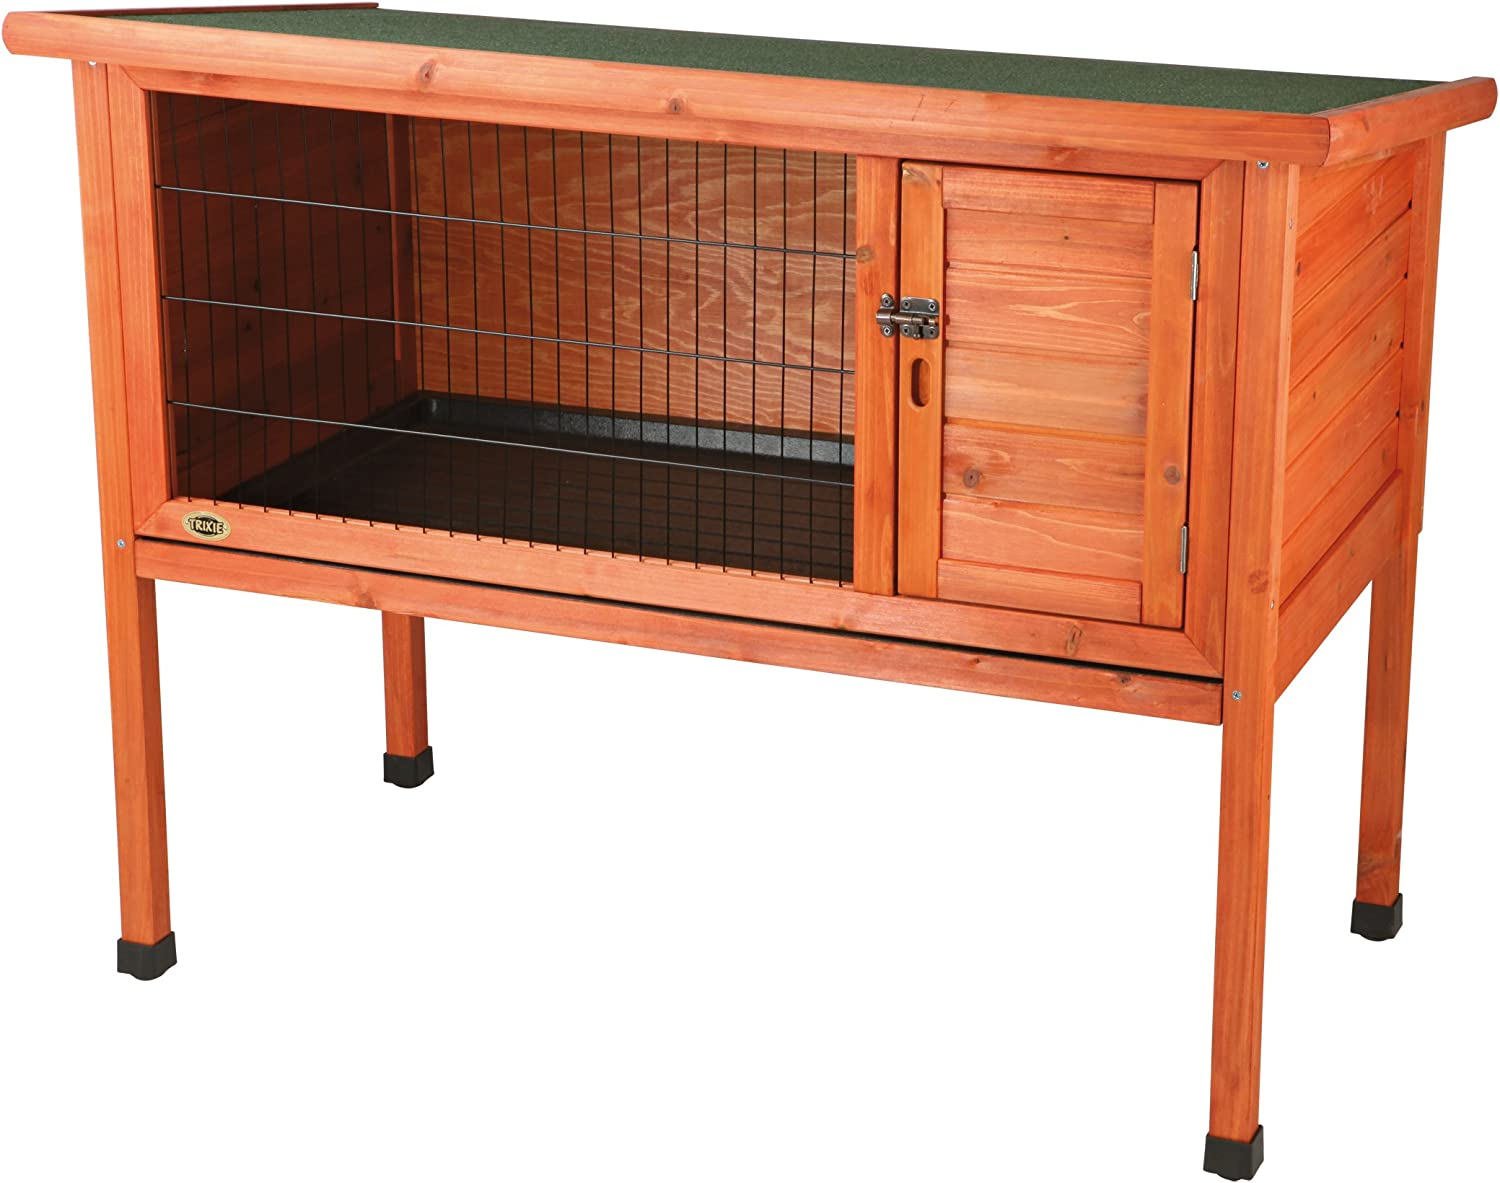 1-Story Rabbit Hutch, 1-Story Rabbit Hutch, Large 81x0cMJMJJL